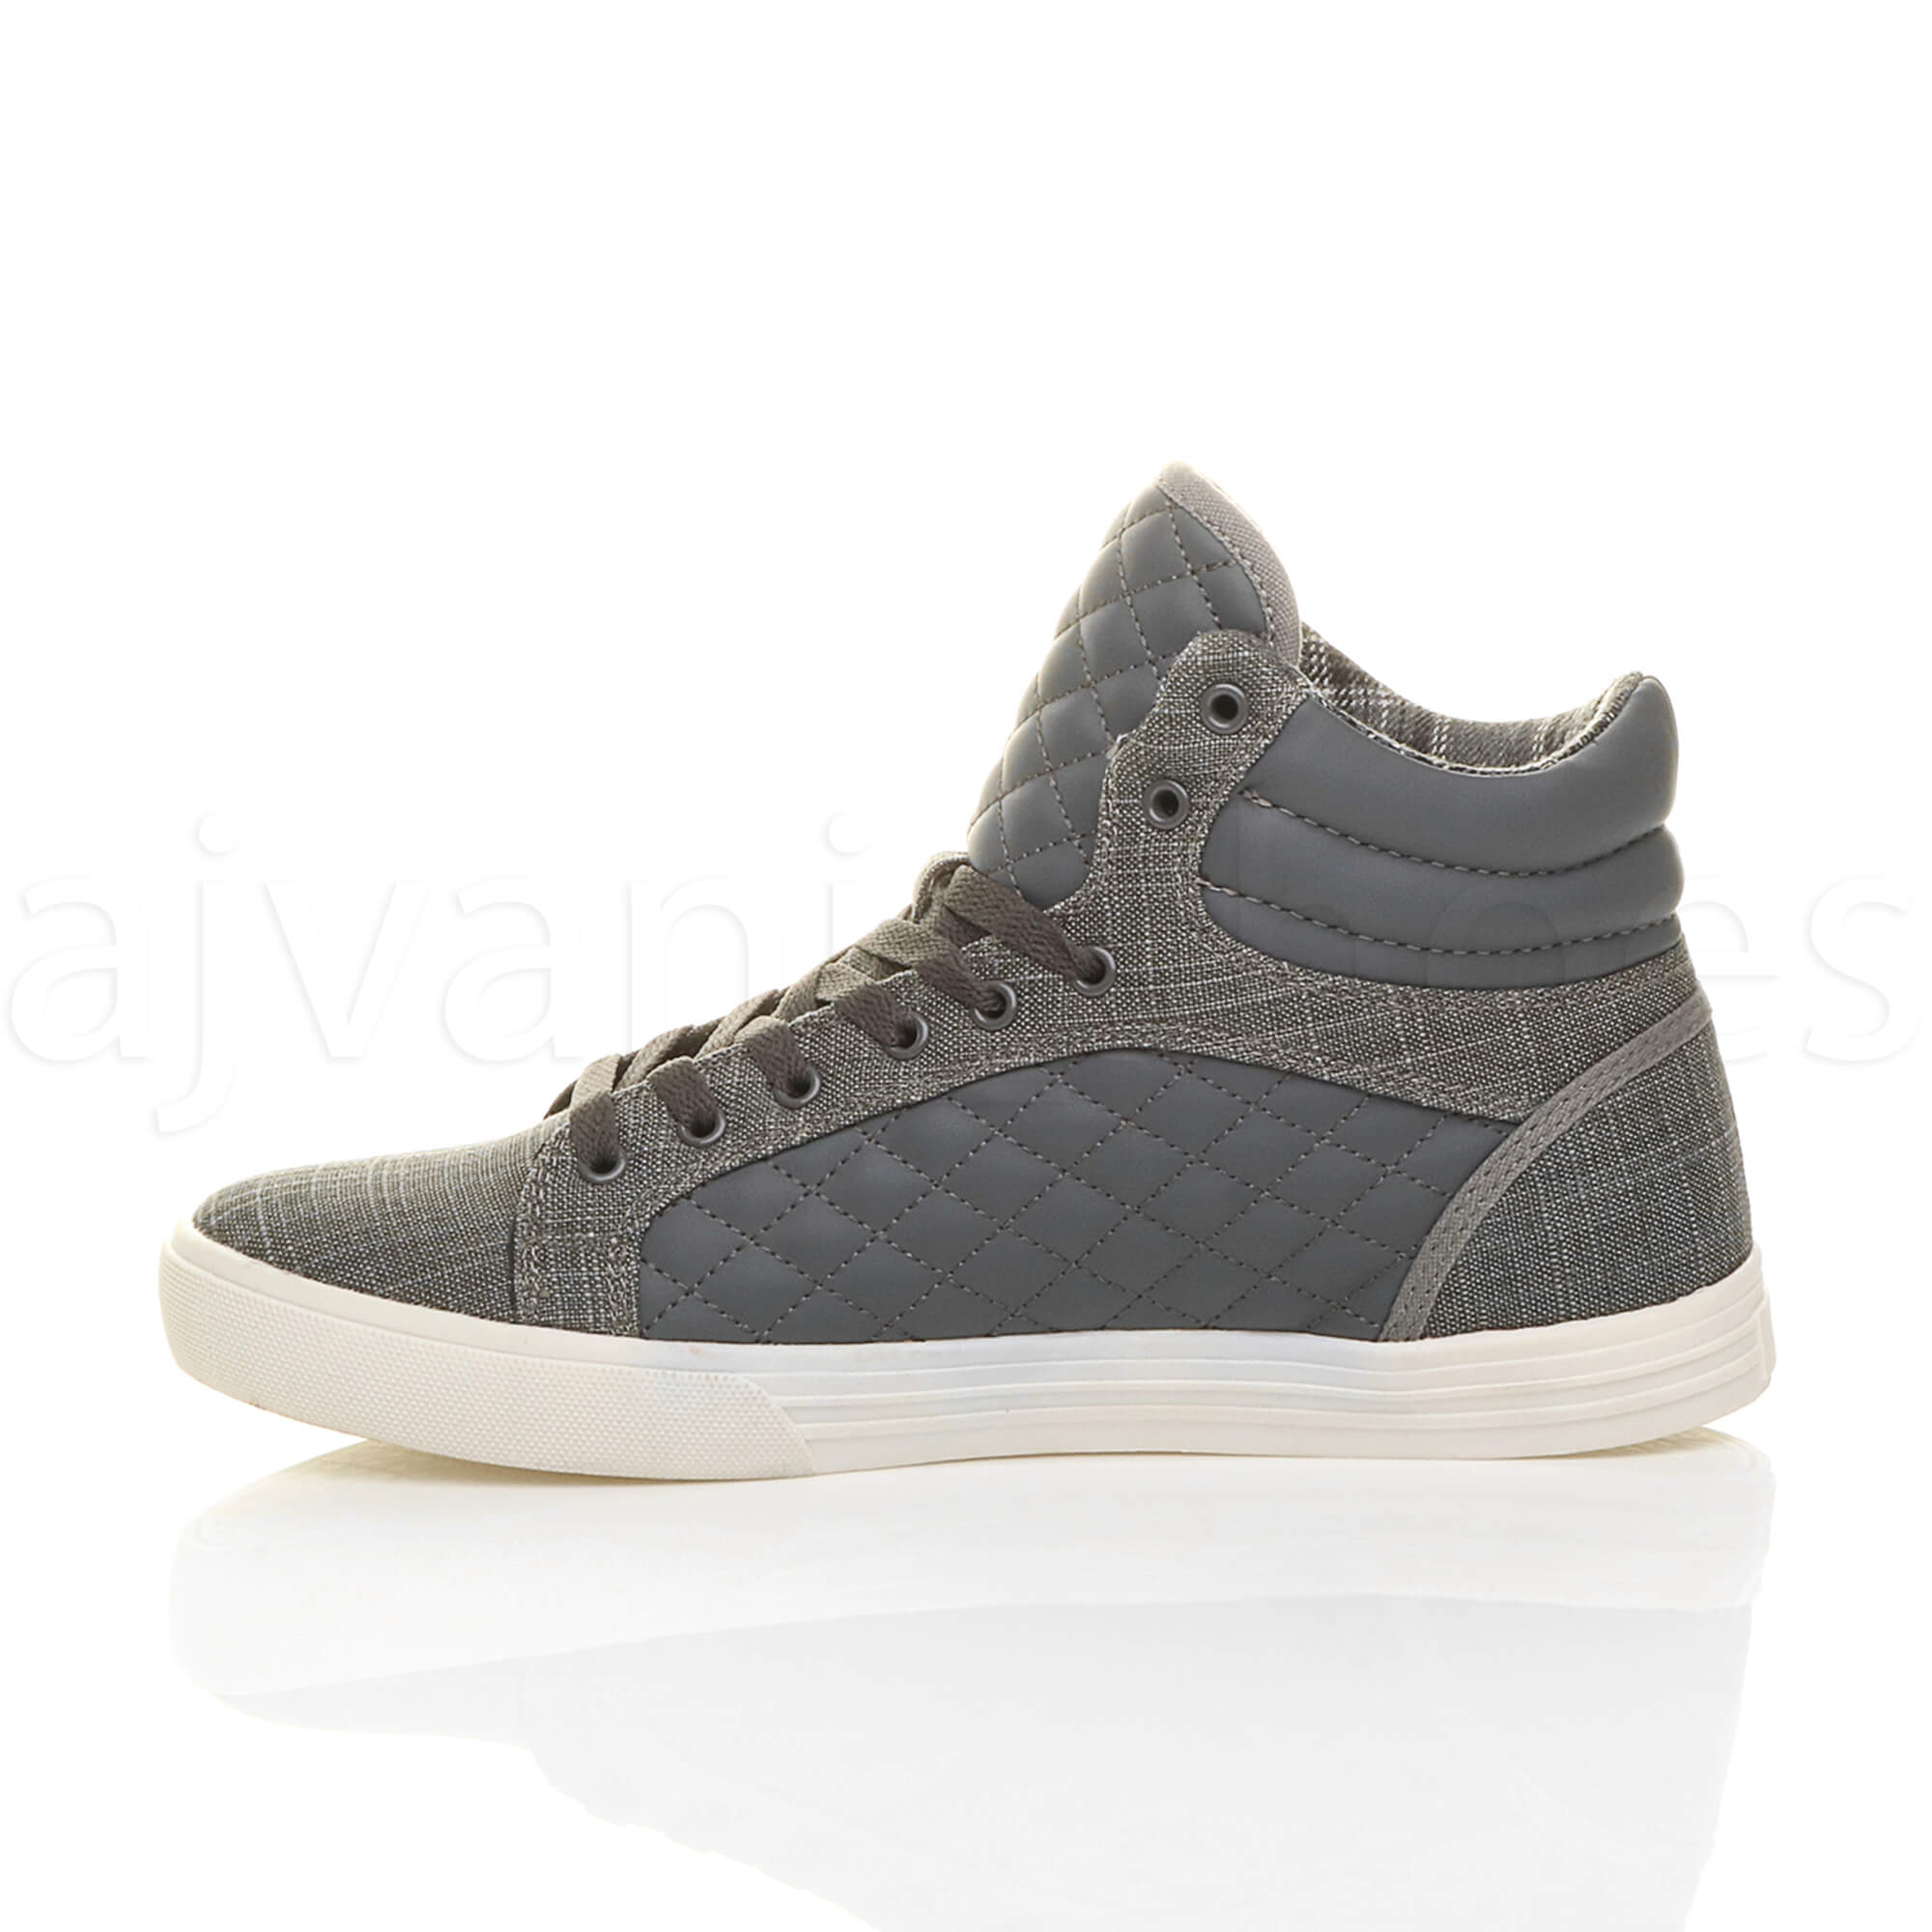 MENS-QUILTED-LACE-UP-FLAT-CASUAL-HI-HIGH-TOP-TRAINERS-SHOES-ANKLE-BOOTS-SIZE thumbnail 11